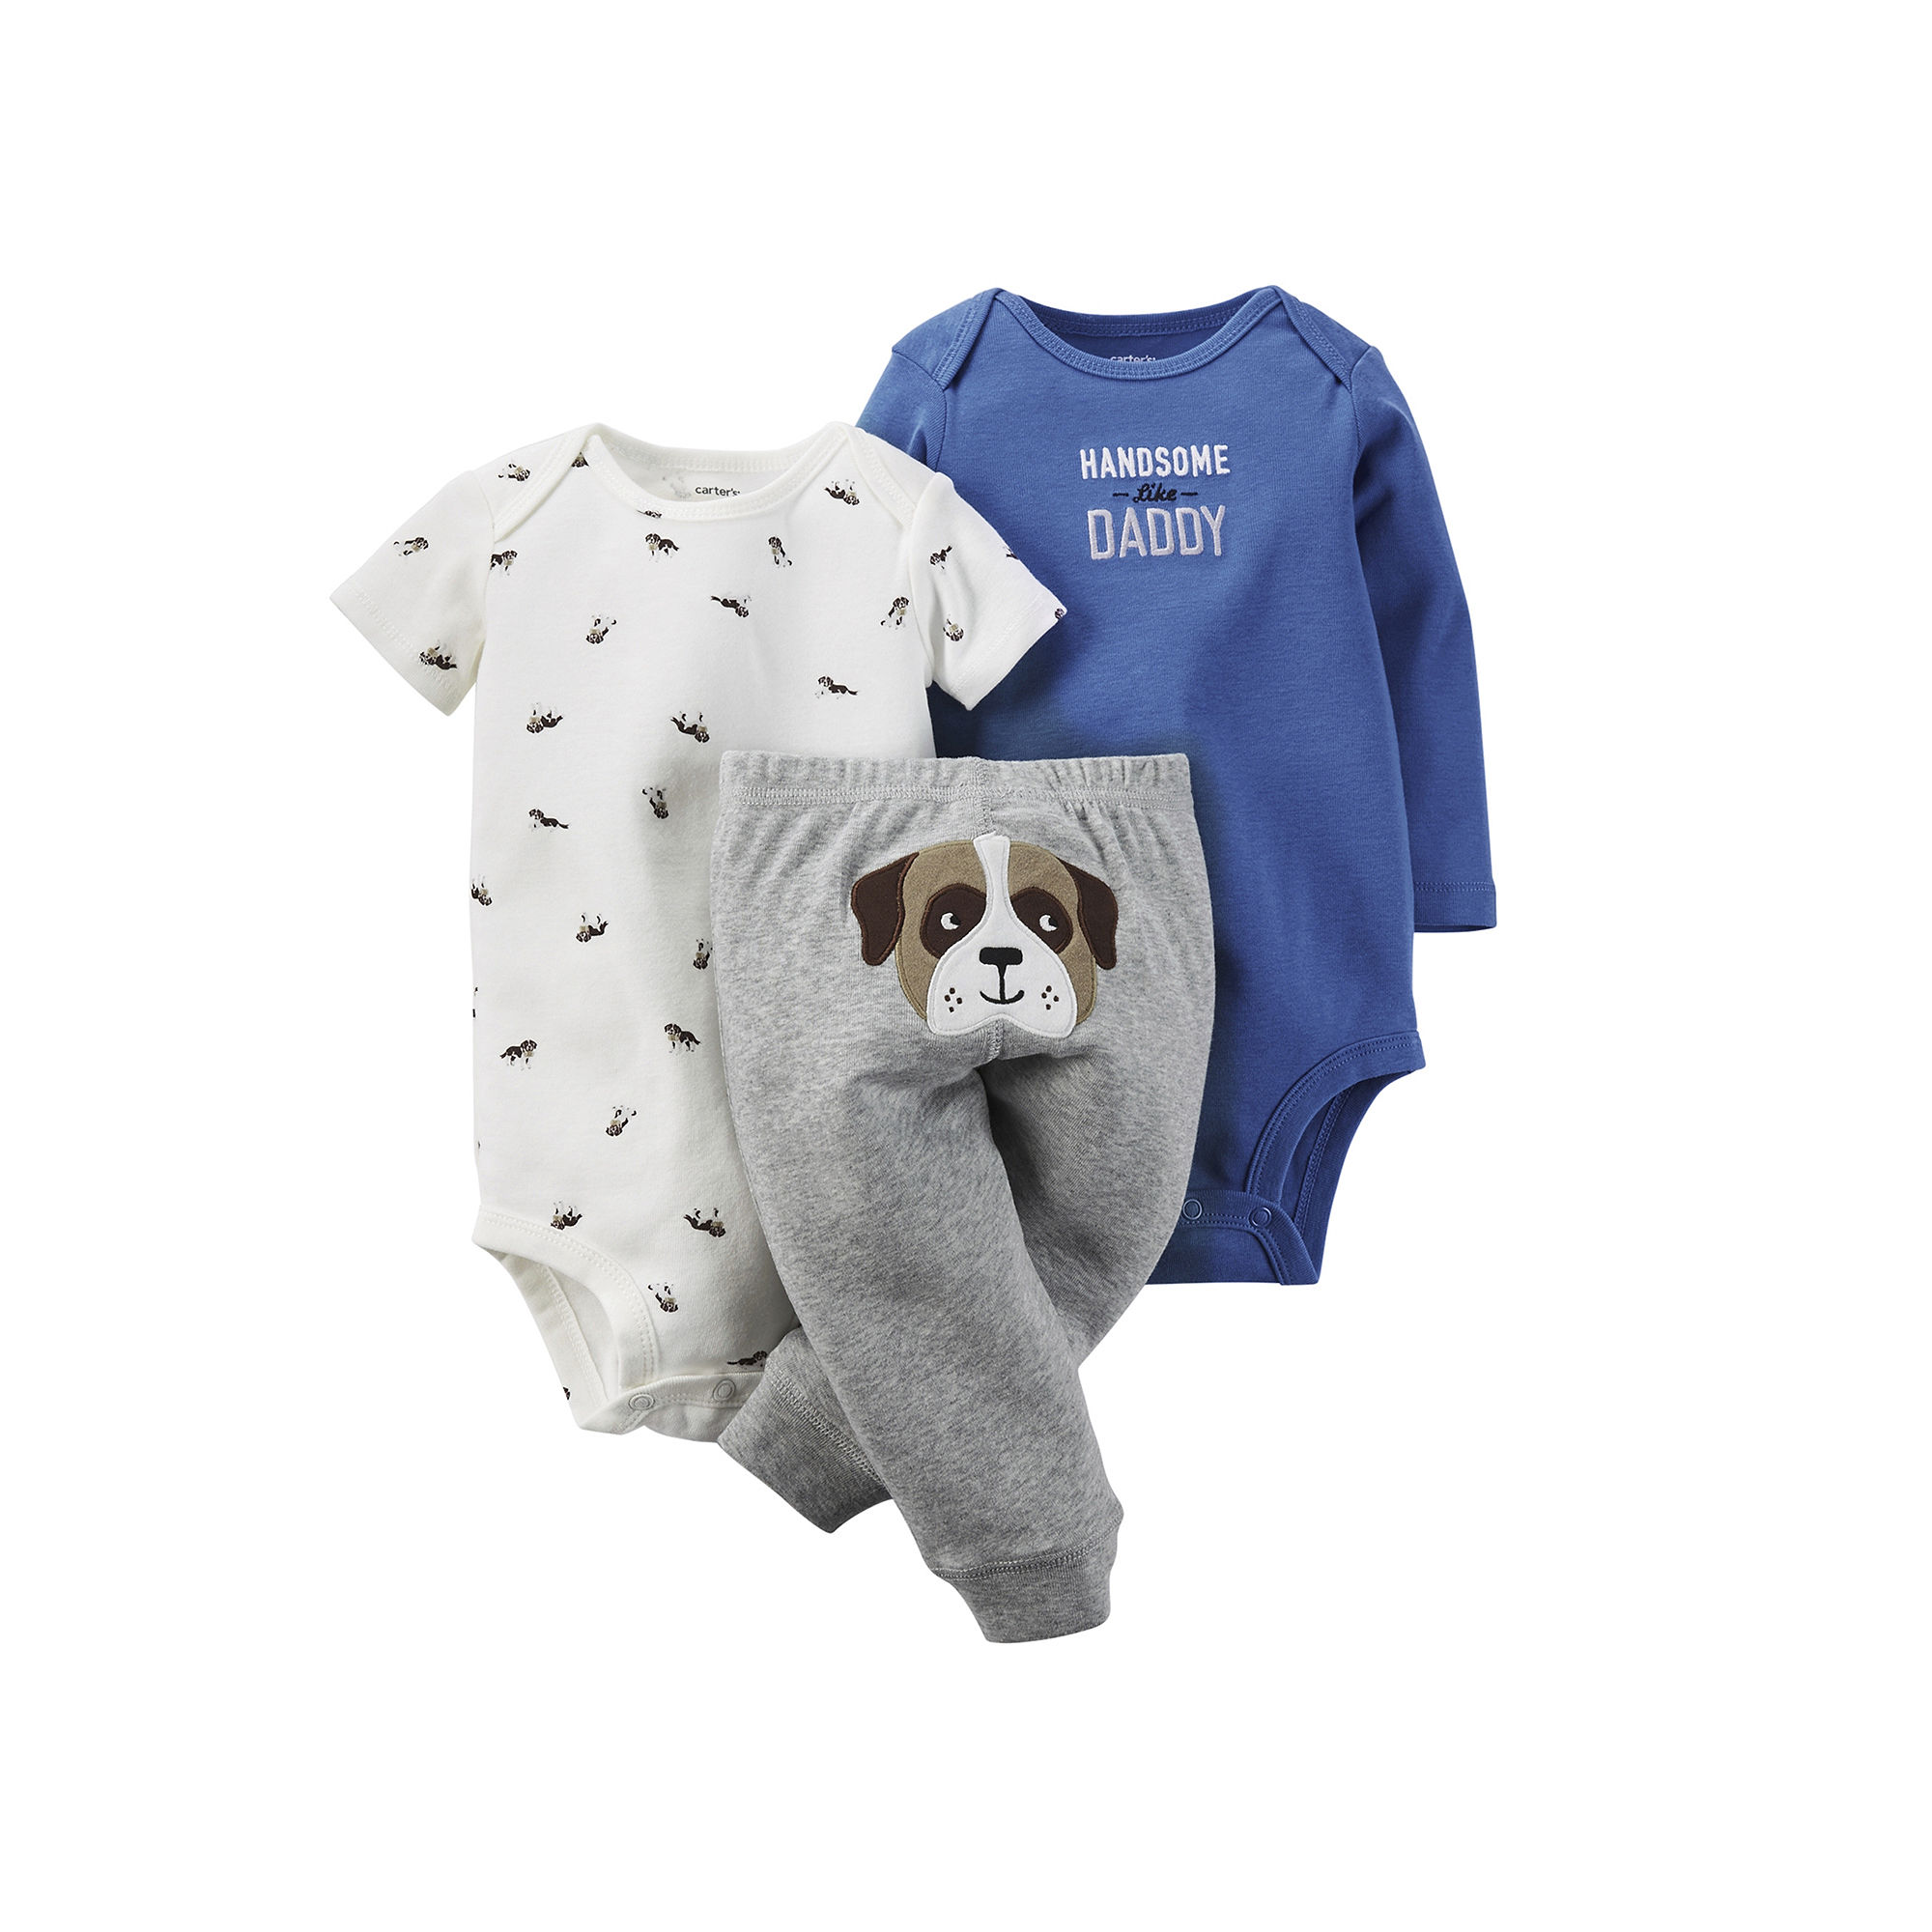 6c3d96b3c UPC 888510950783 product image for Carter's Dog Bodysuits and Pants - Baby  Boys newborn-24m ...